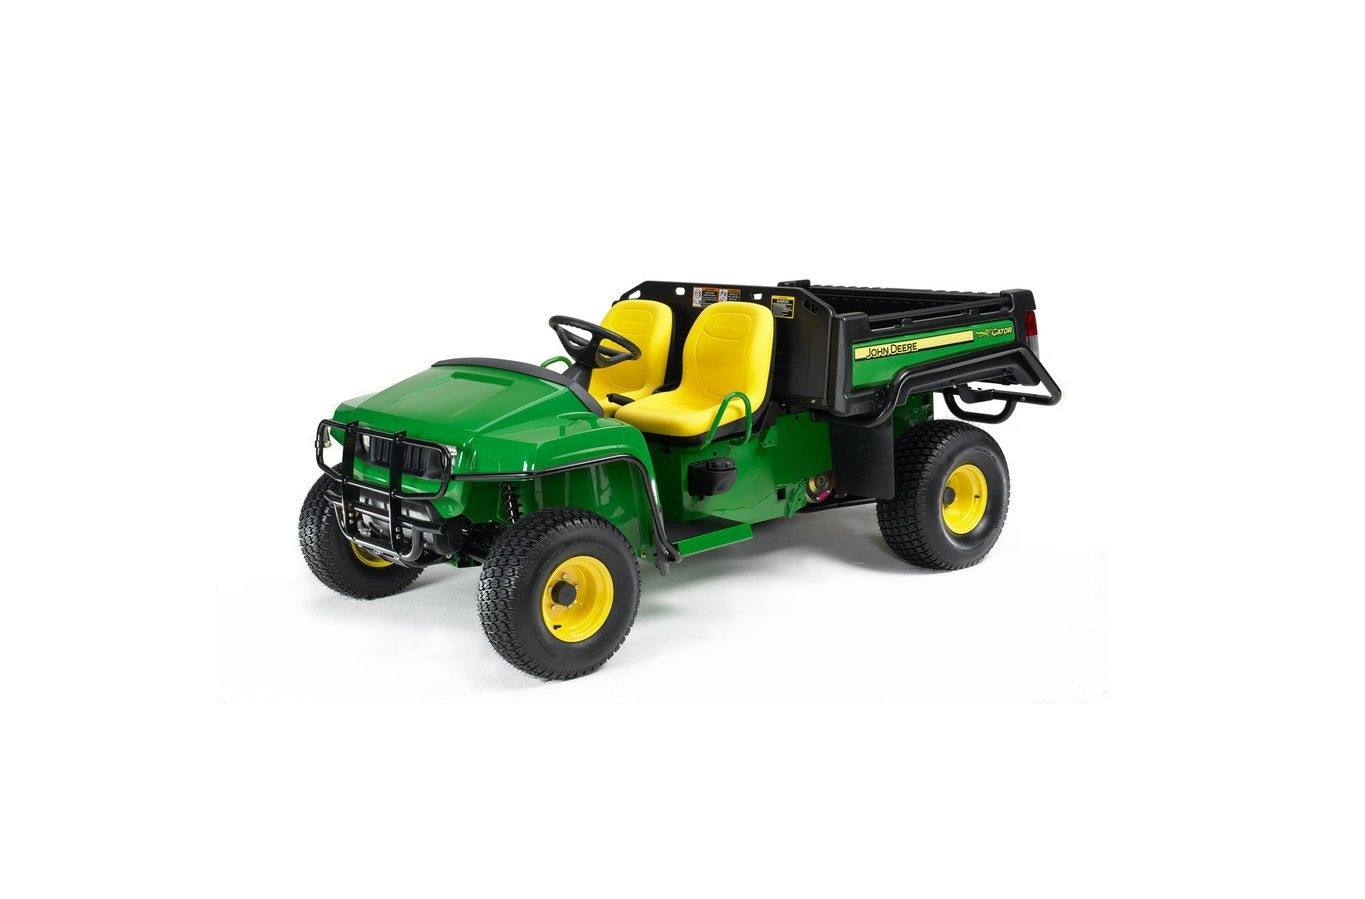 2019 John Deere TX 4x2 for sale in Middletown, CT  Midstate